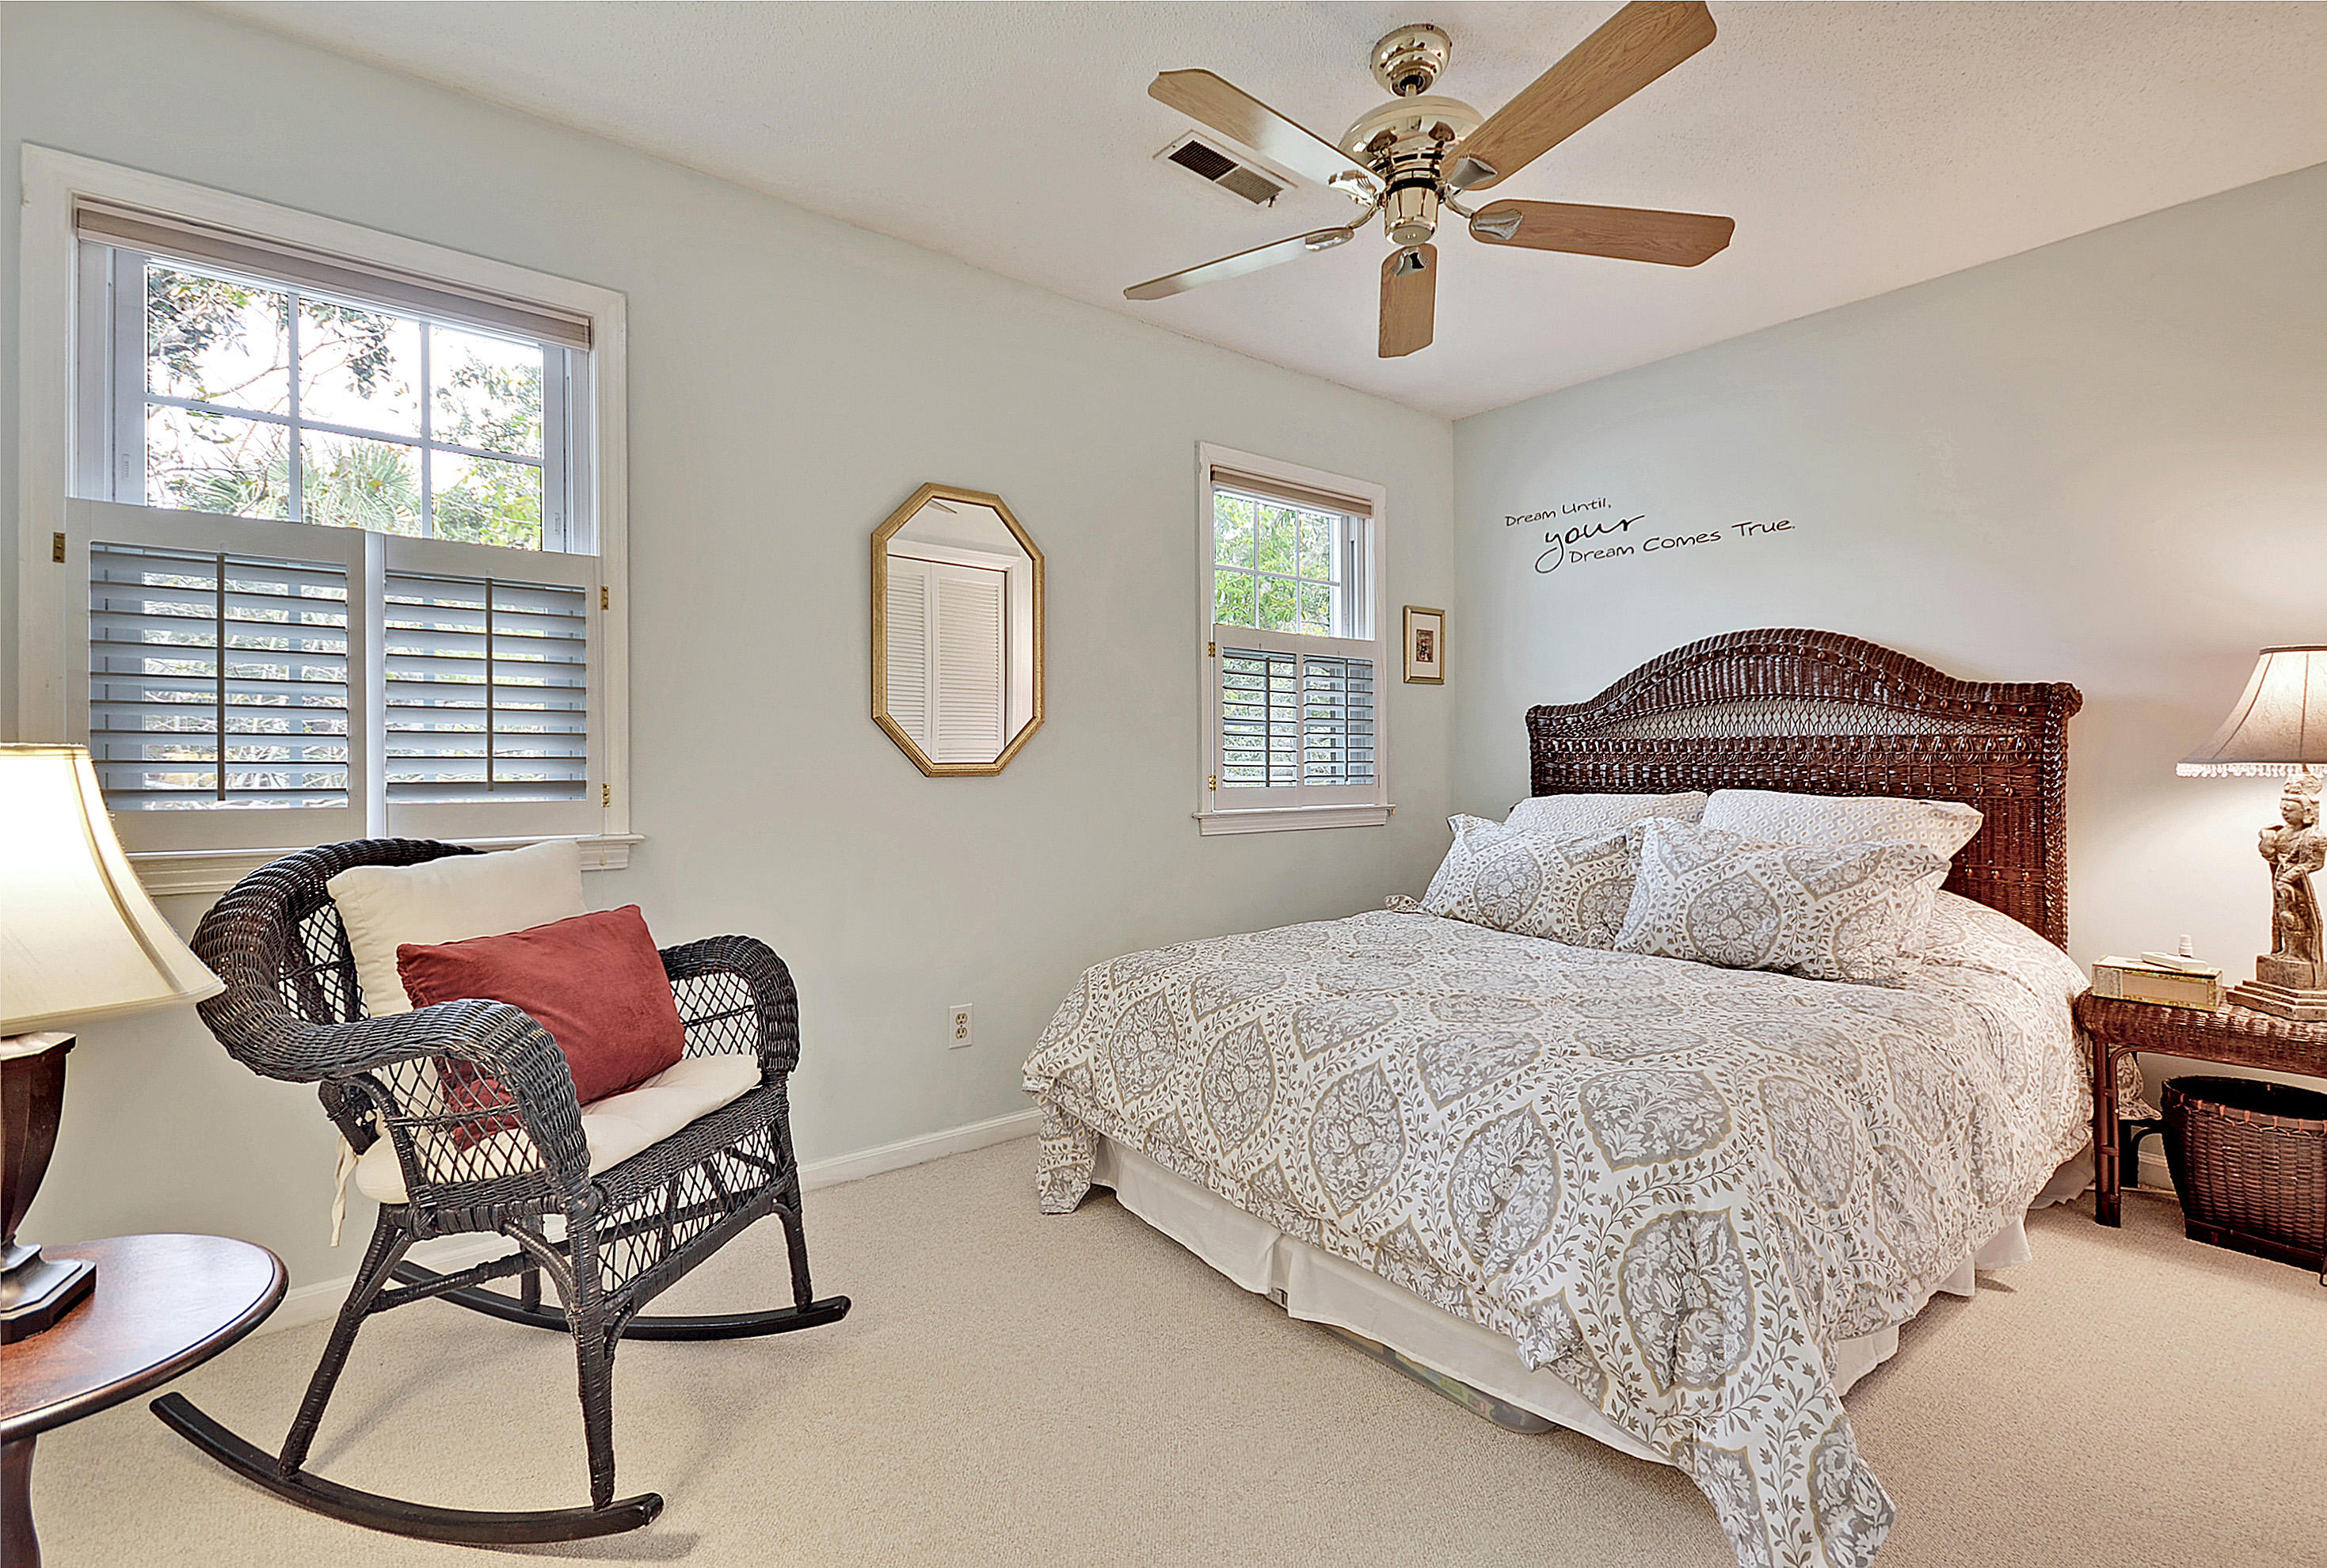 South of Broad Homes For Sale - 0 Rutledge, Charleston, SC - 20